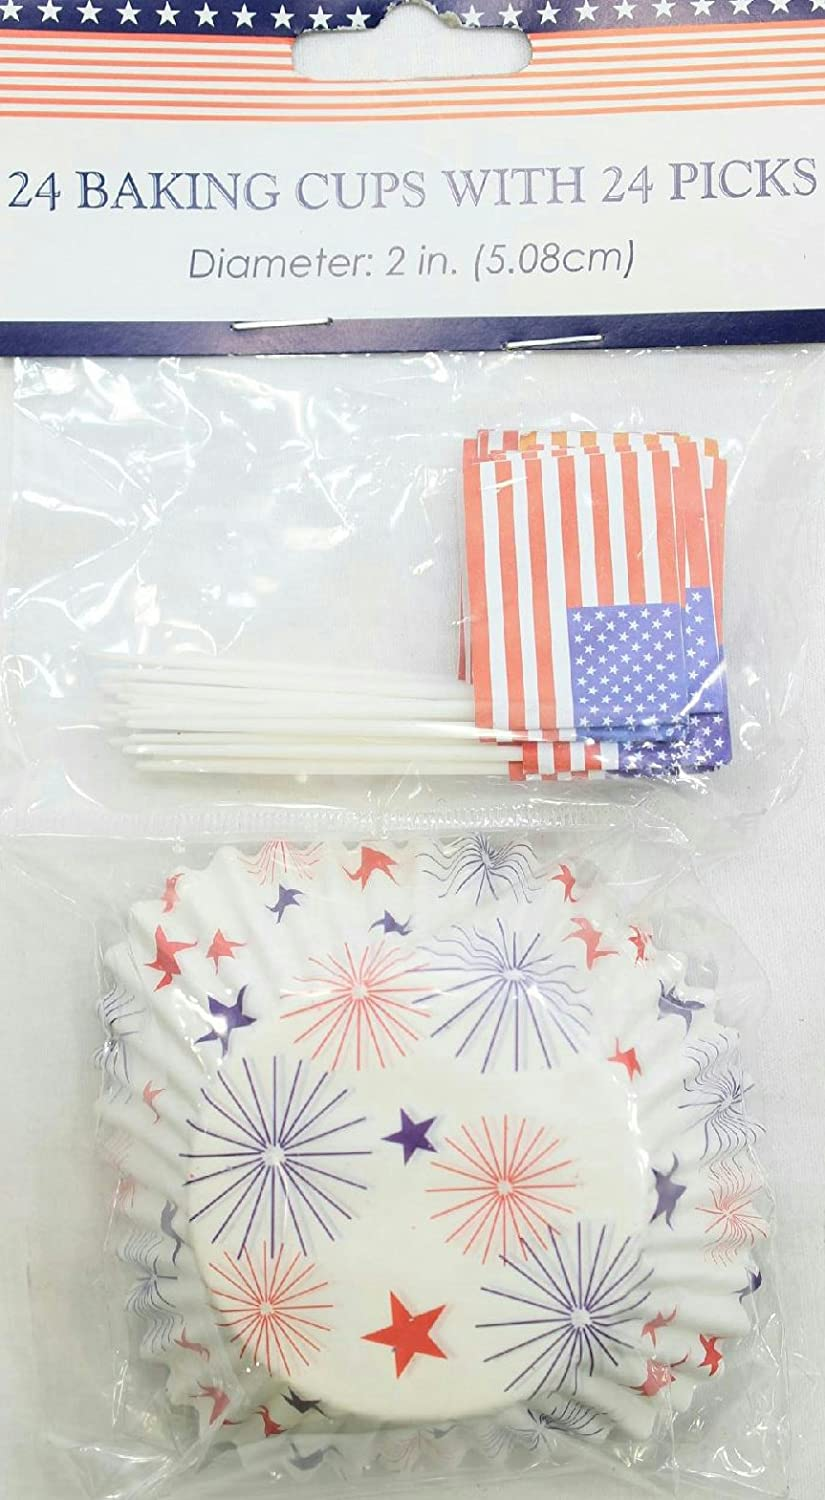 24 Baking Cups w/ 24 Flag Picks Patriotic Stars Fireworks Cupcake Paper July 4th 4th july usa flag heart white halter patriotic star girl one piece dress 1 8year mahd048